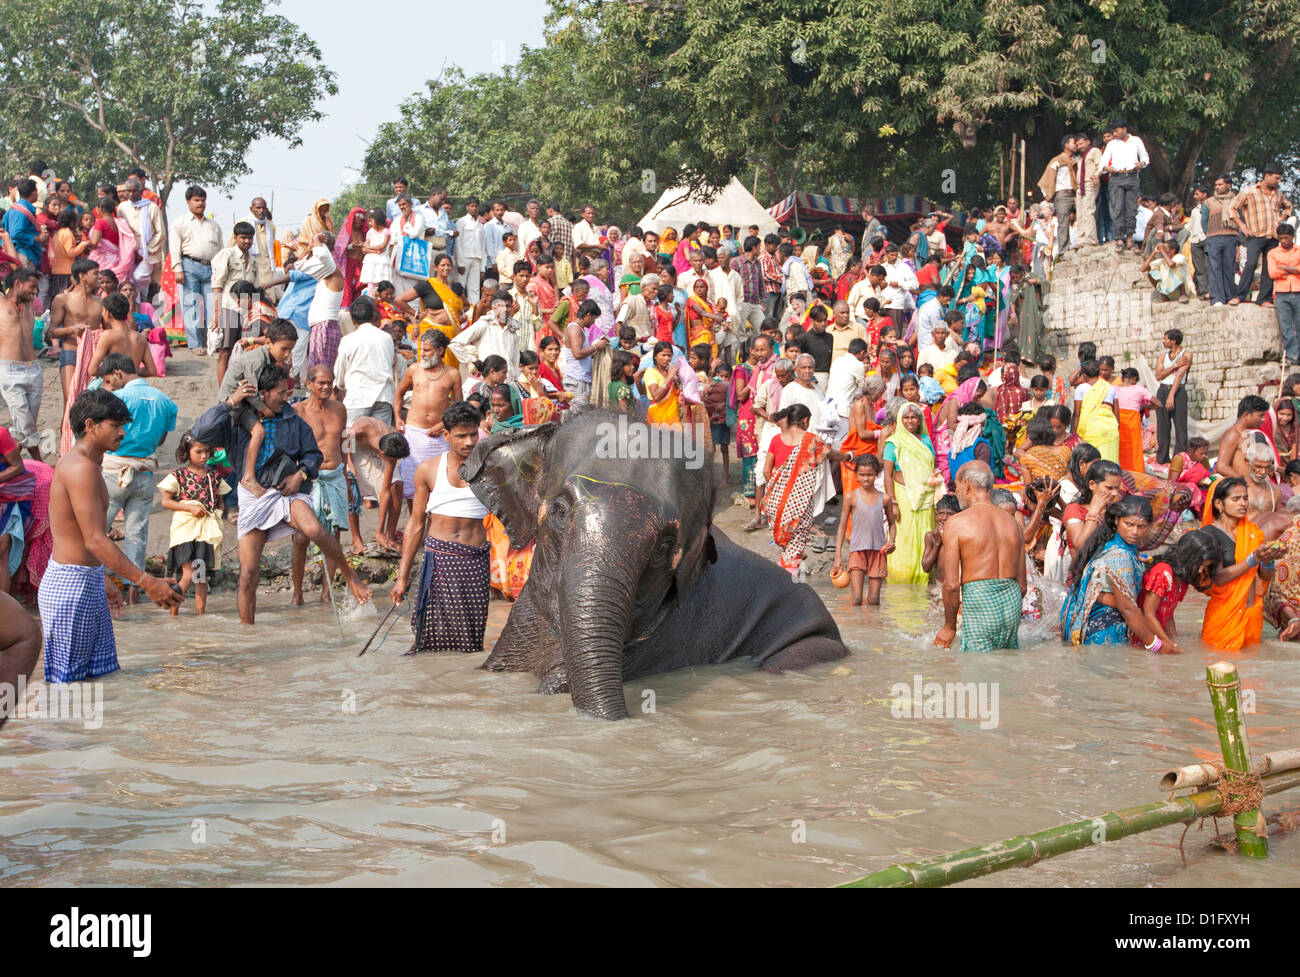 Elephant being washed near the banks of the River Ganges crowded with visitors to the Sonepur Cattle Fair, Bihar, - Stock Image